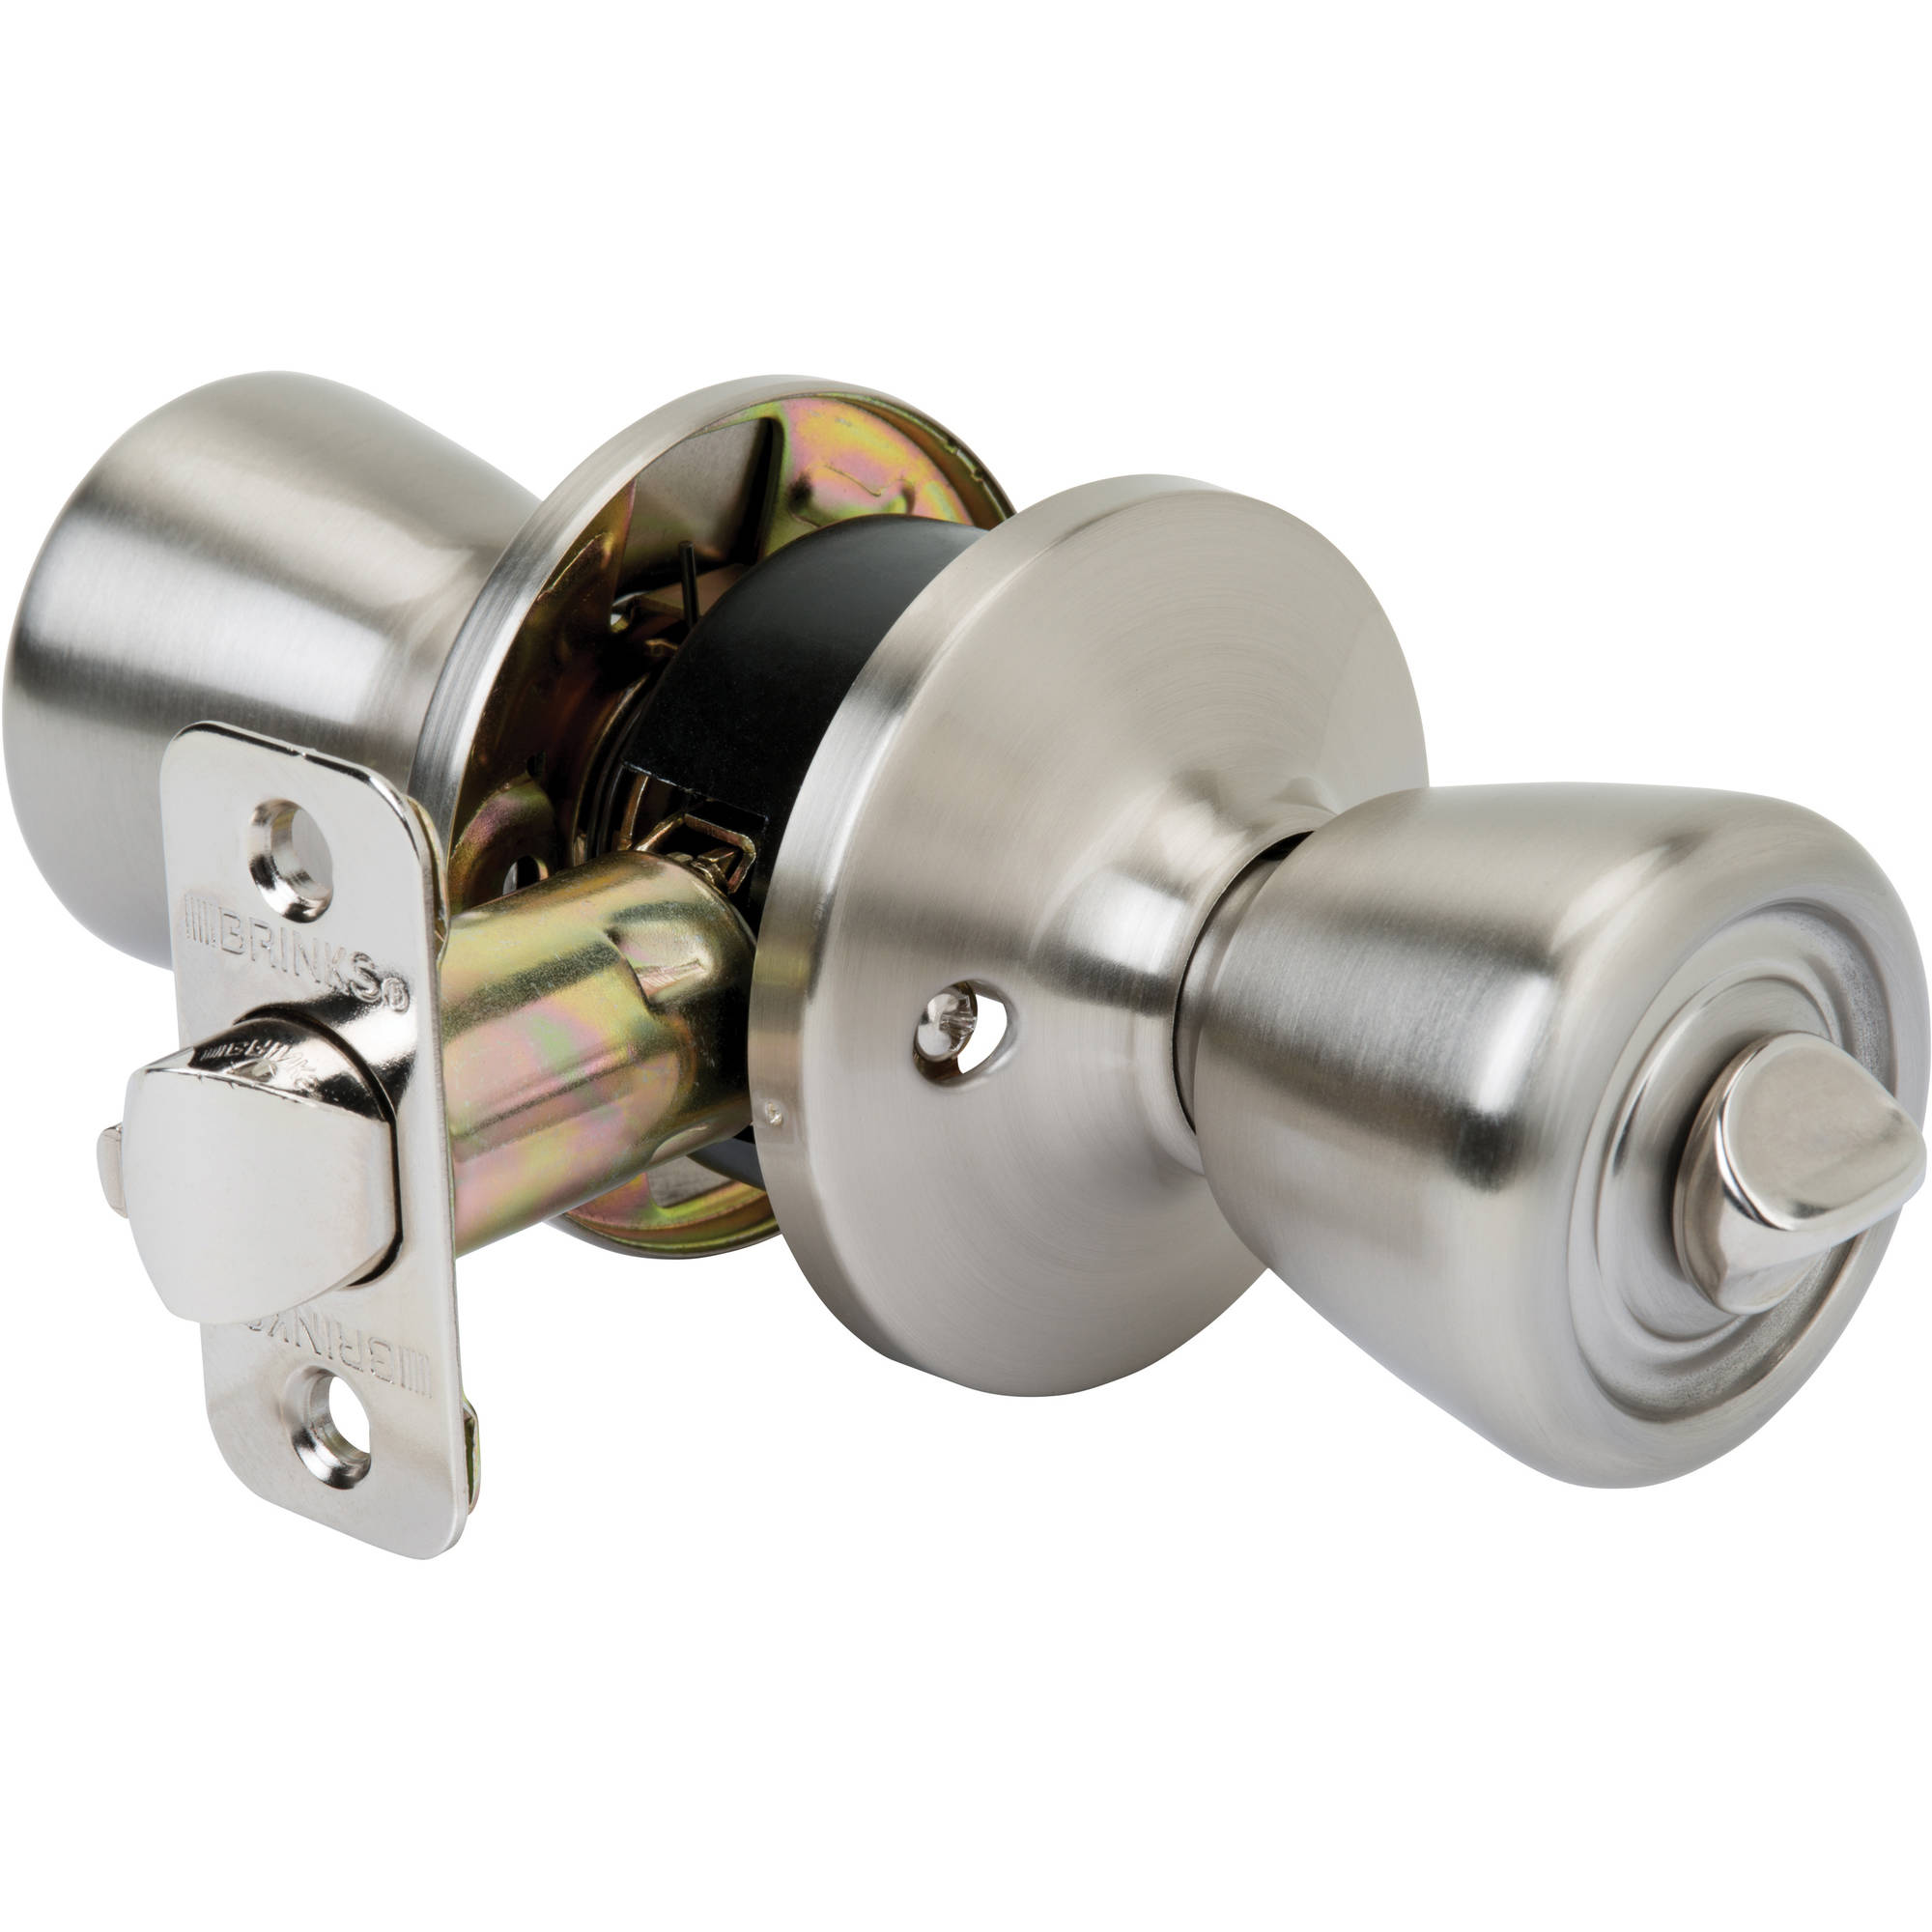 Brink's Tulip Style Privacy Bed & Bath Door Knob, Satin Nickel